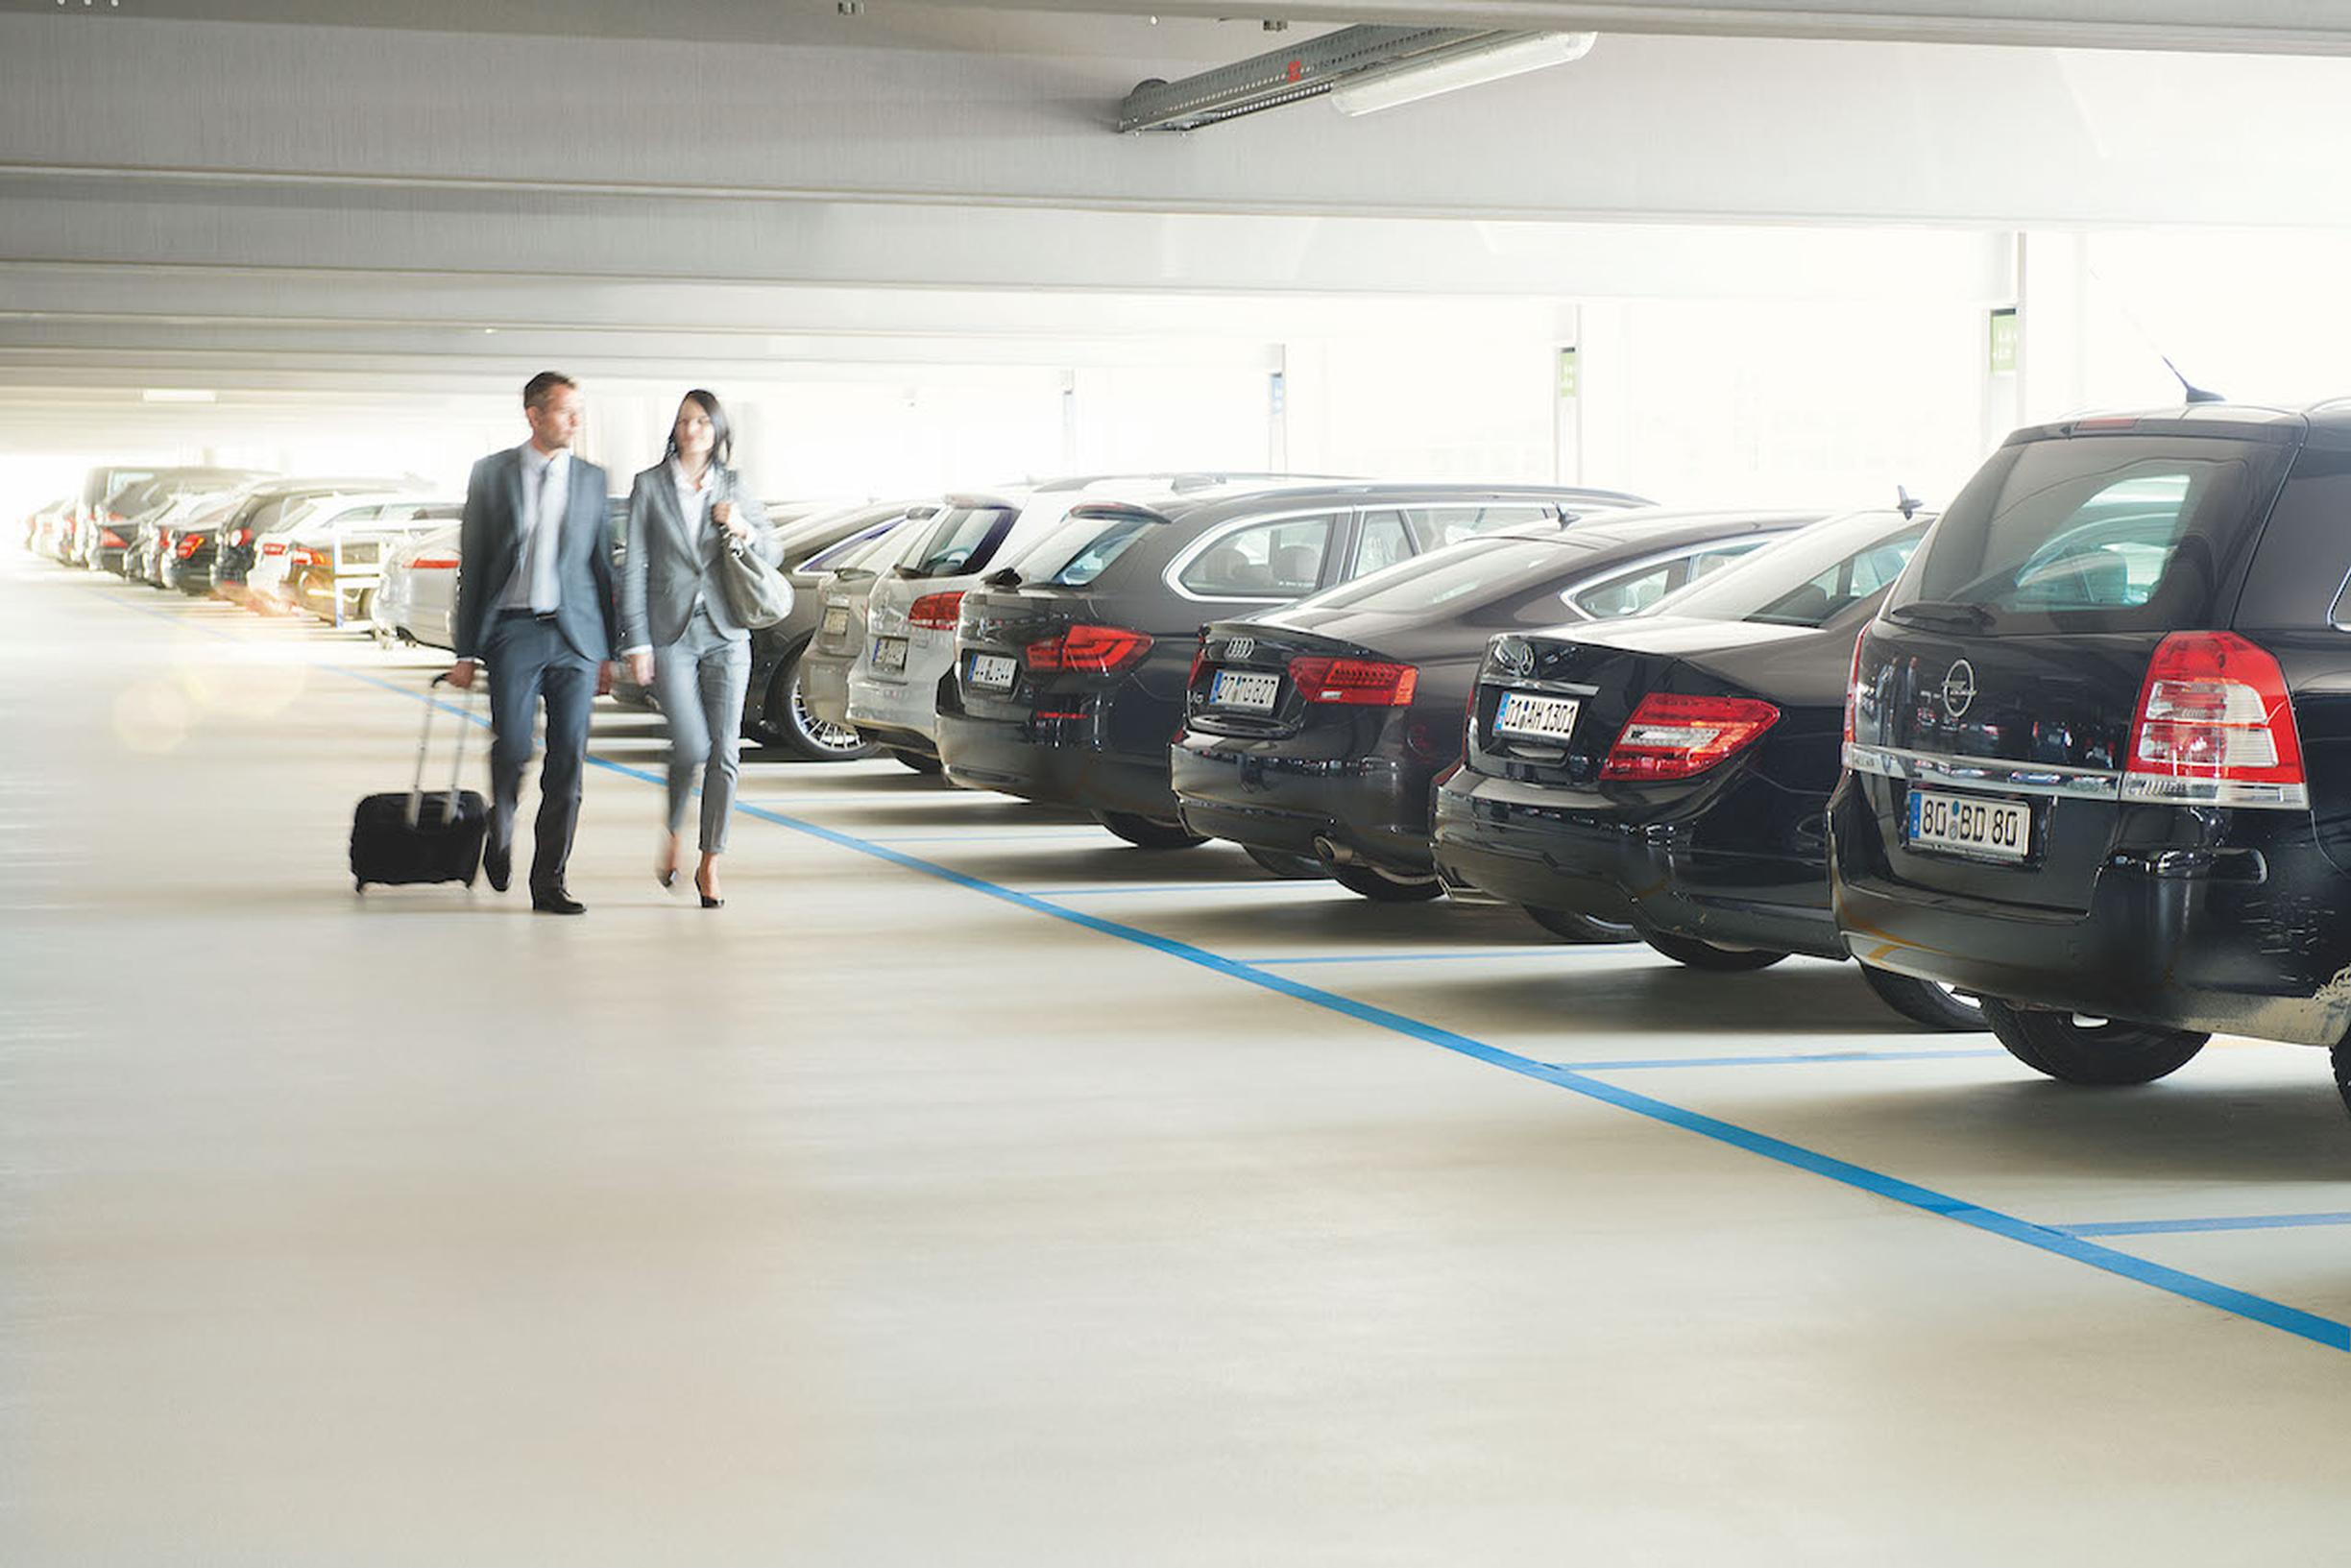 APCOA to share parking data with INRIX